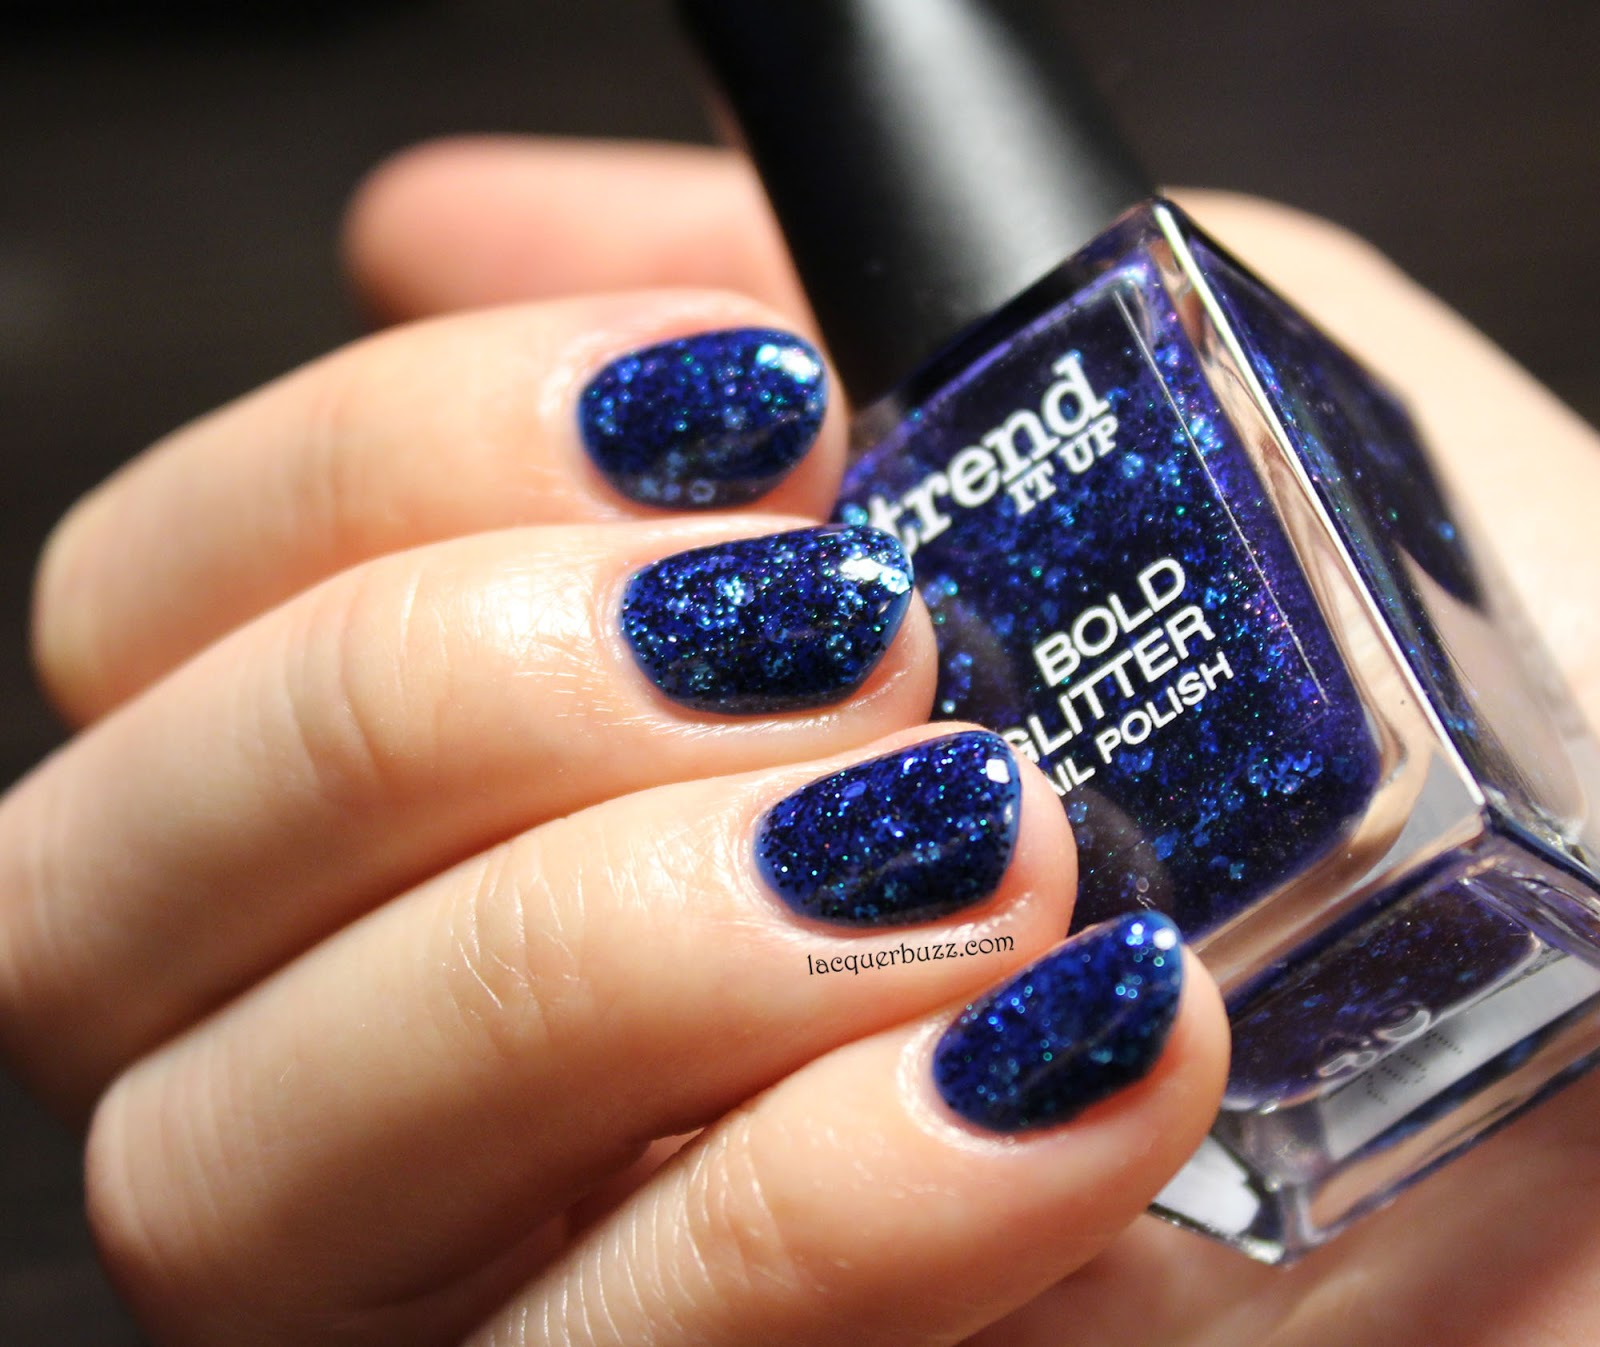 Lacquer Buzz: Monday Blues: Trend It Up Bold Glitter 030